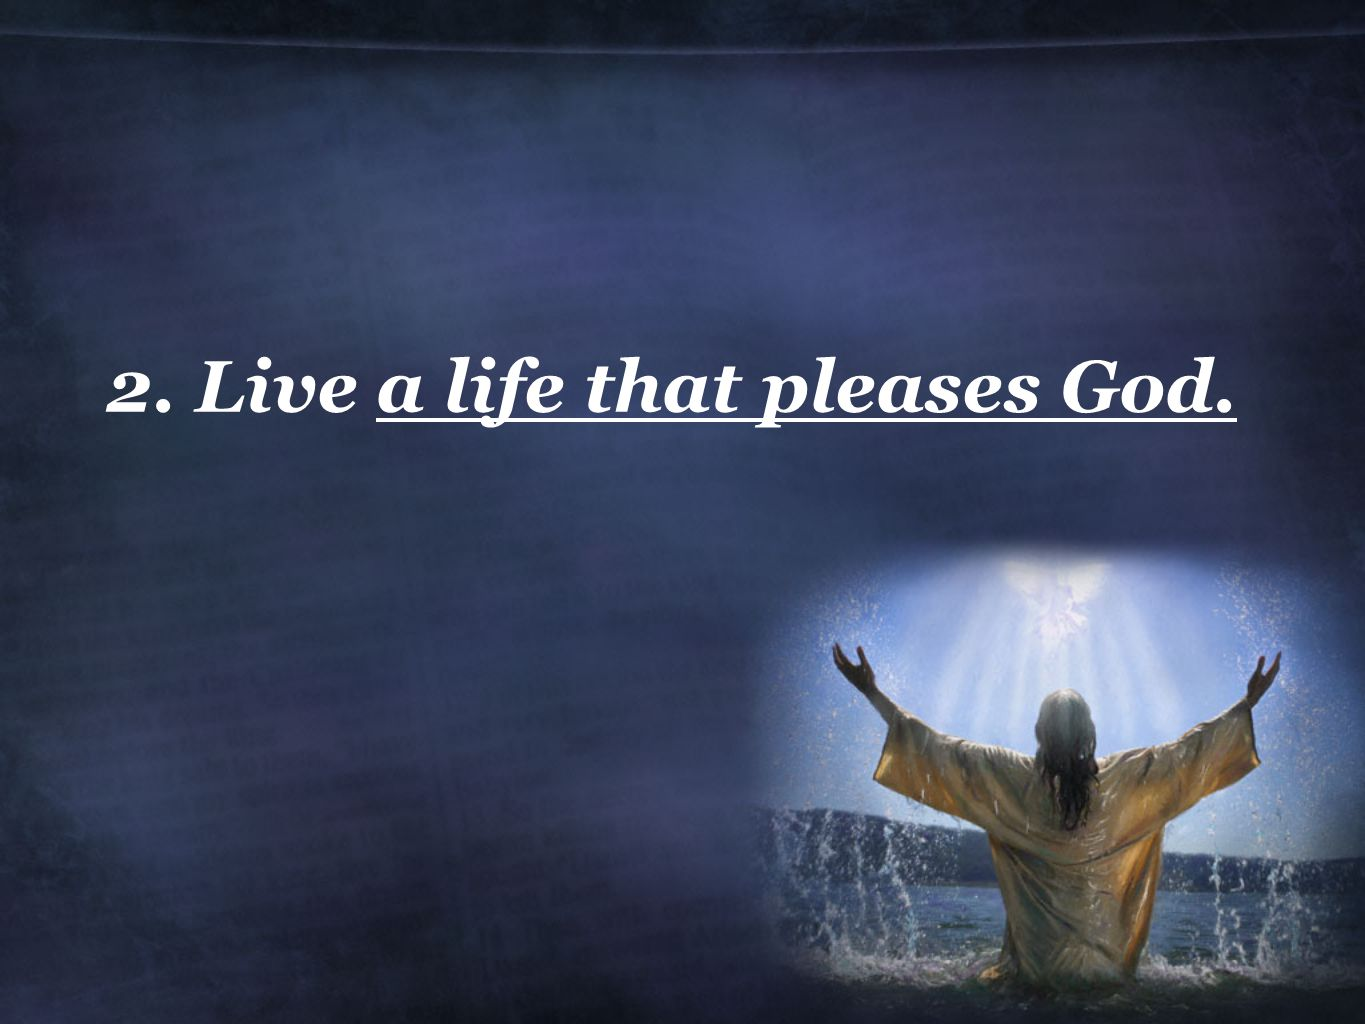 2. Live a life that pleases God.